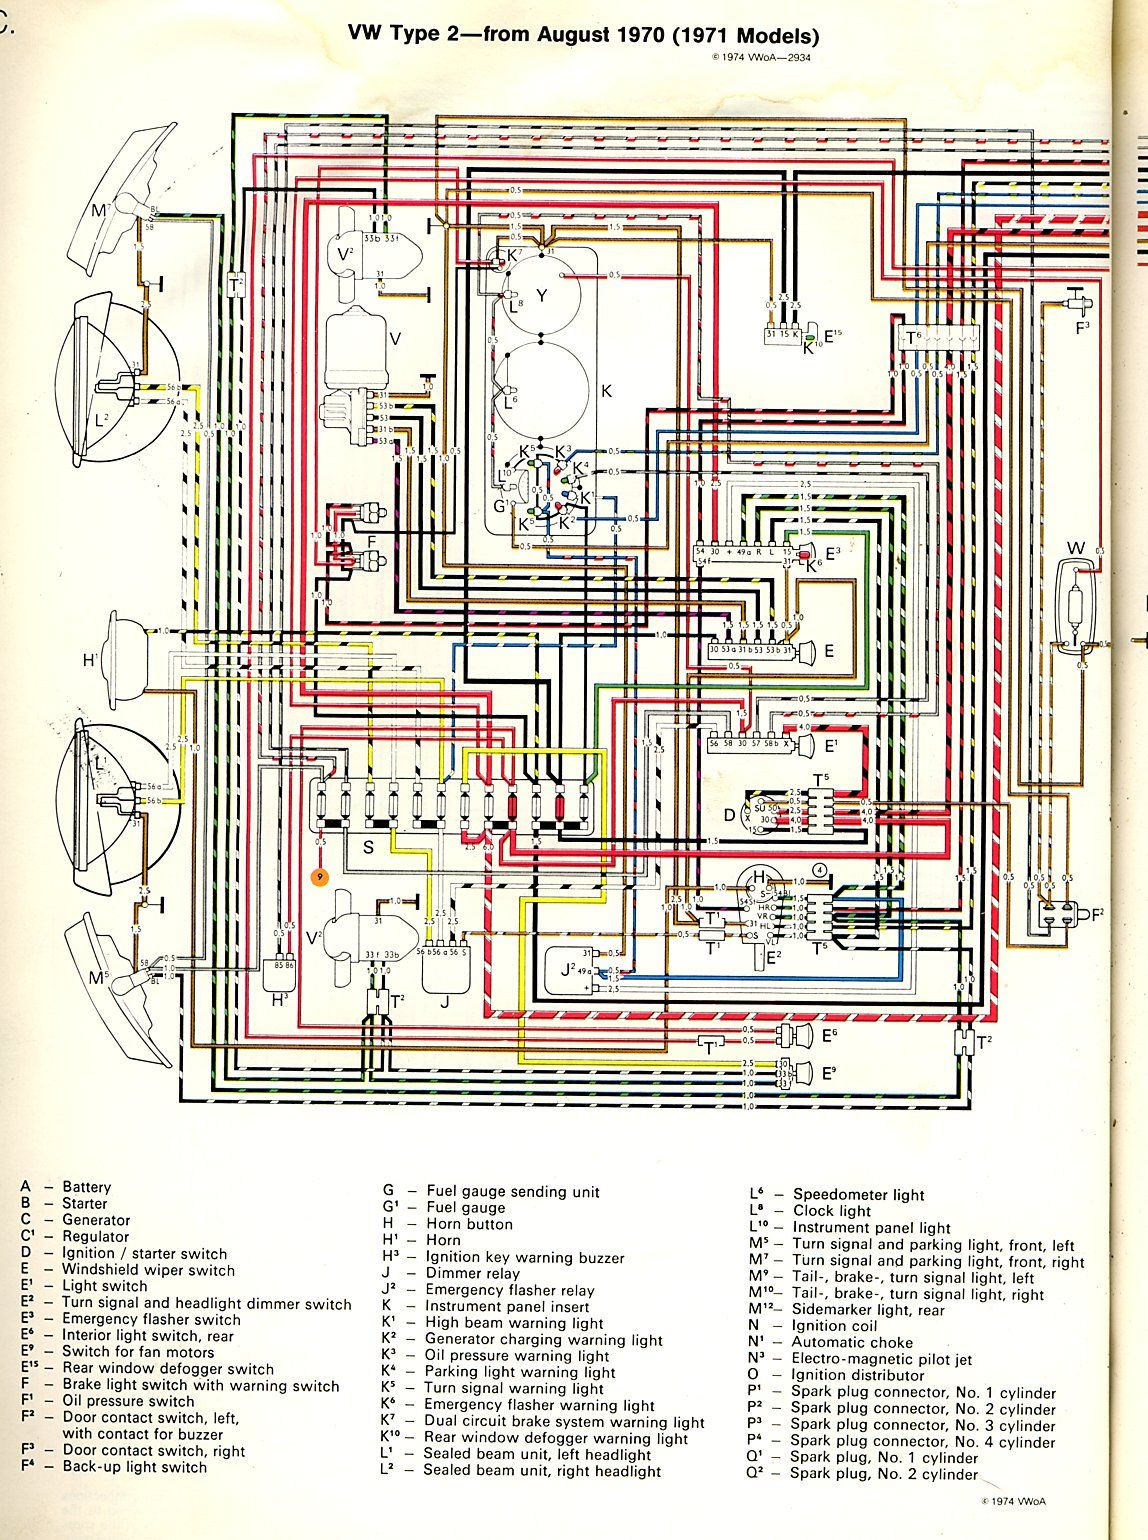 1971 bus wiring diagram thegoldenbug com stuff to try in 2018 rh pinterest  com 1966 Buick GS 1970 Buick GS